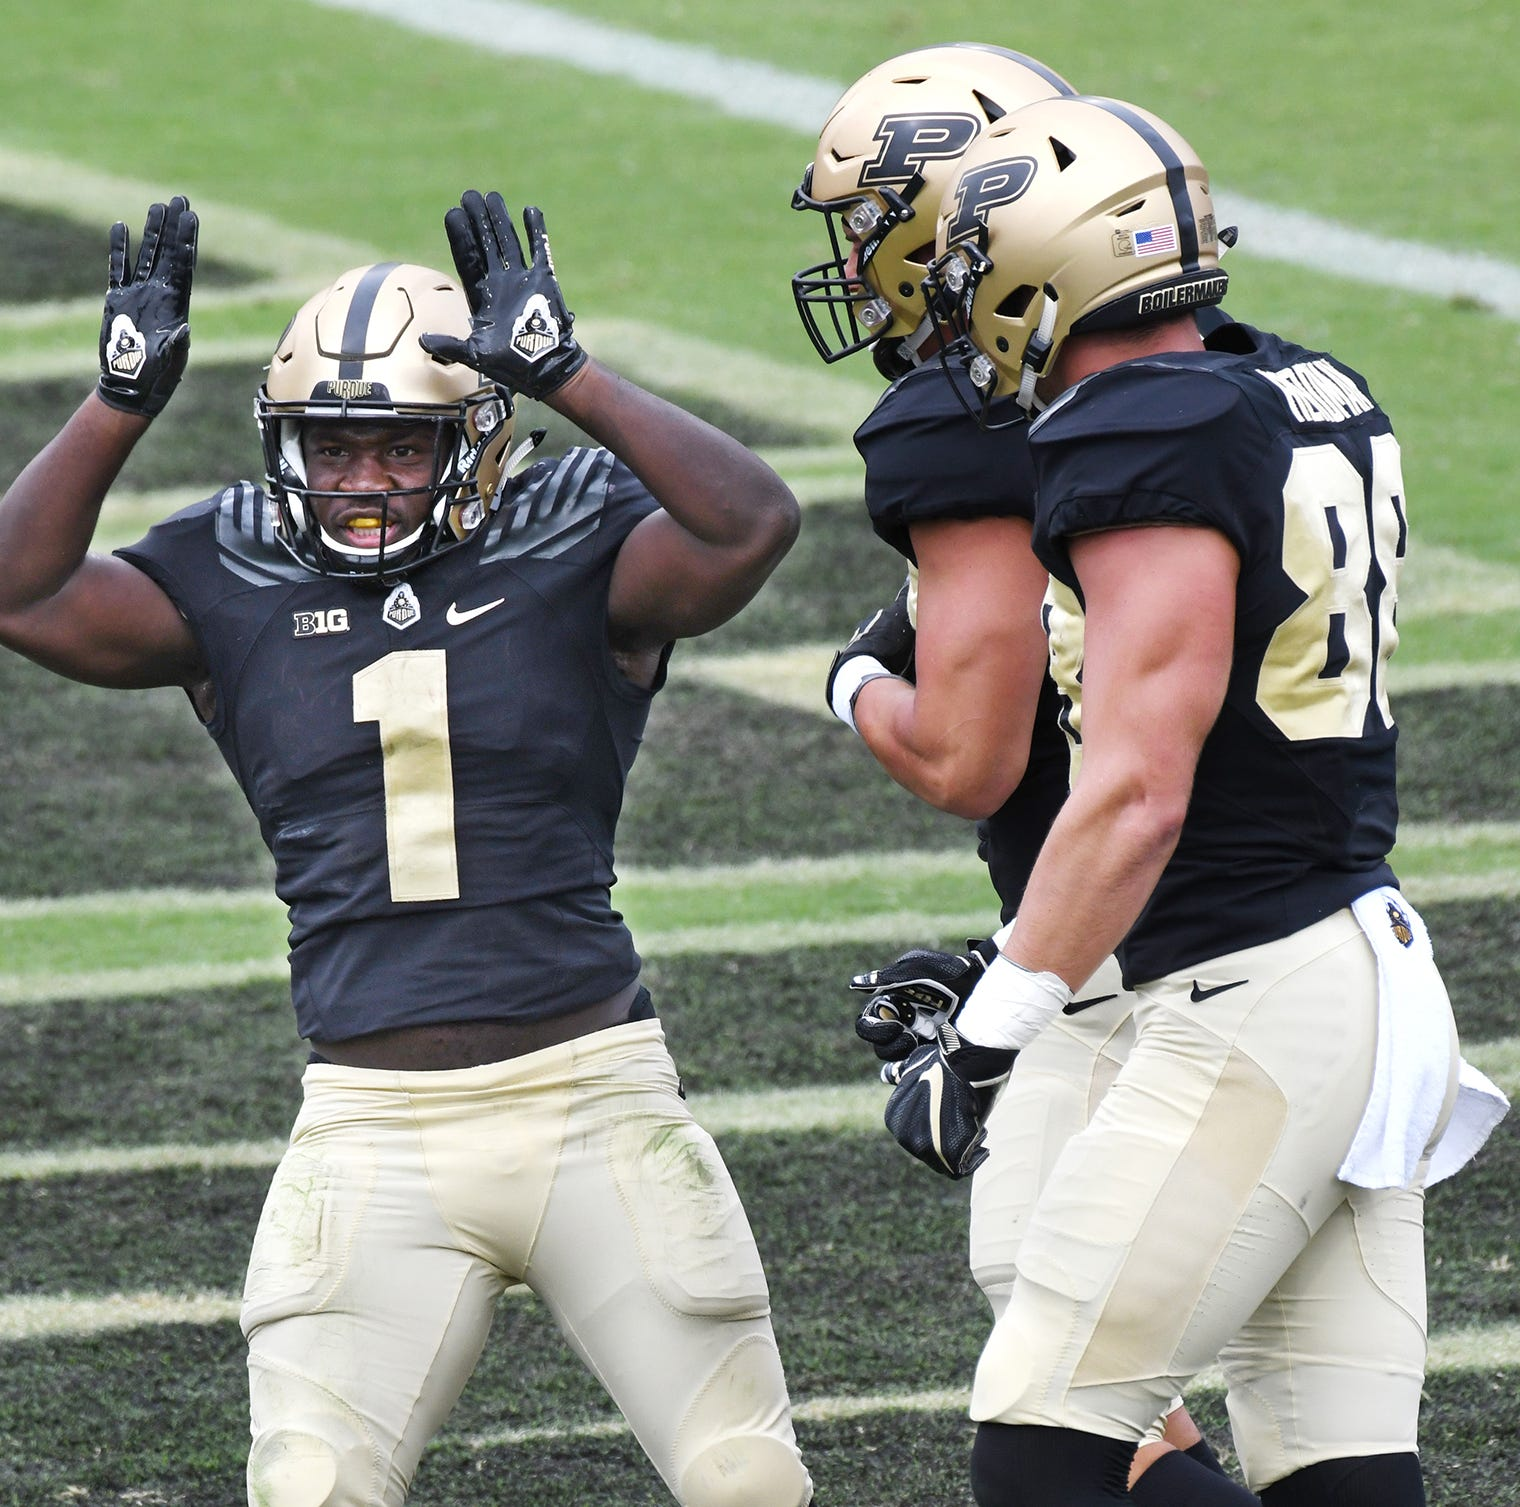 Purdue football: 5 facts from the last time the Boilermakers beat a top-25 team